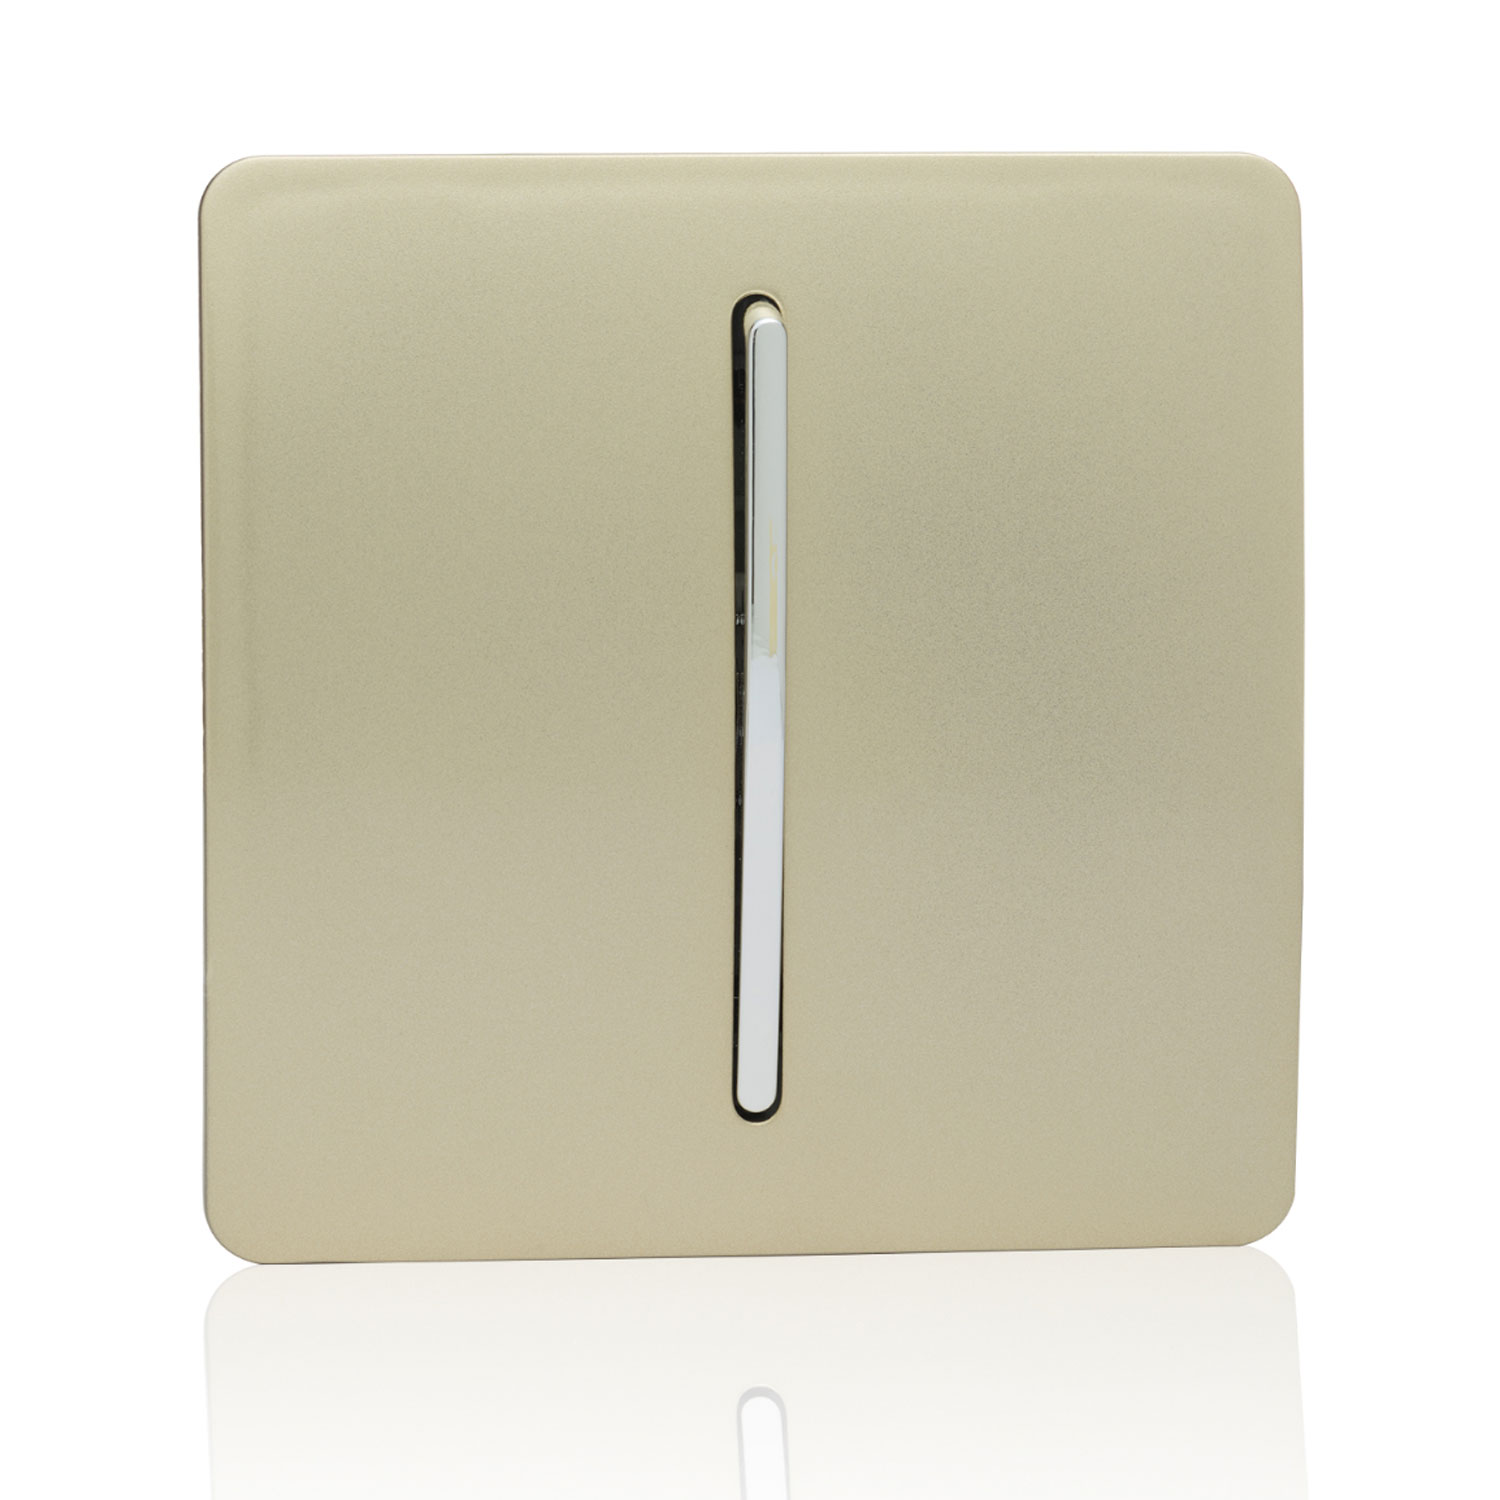 hight resolution of trendi 1 gang 3 way intermediate artistic modern glossy 10 amp rocker light switch champagne gold